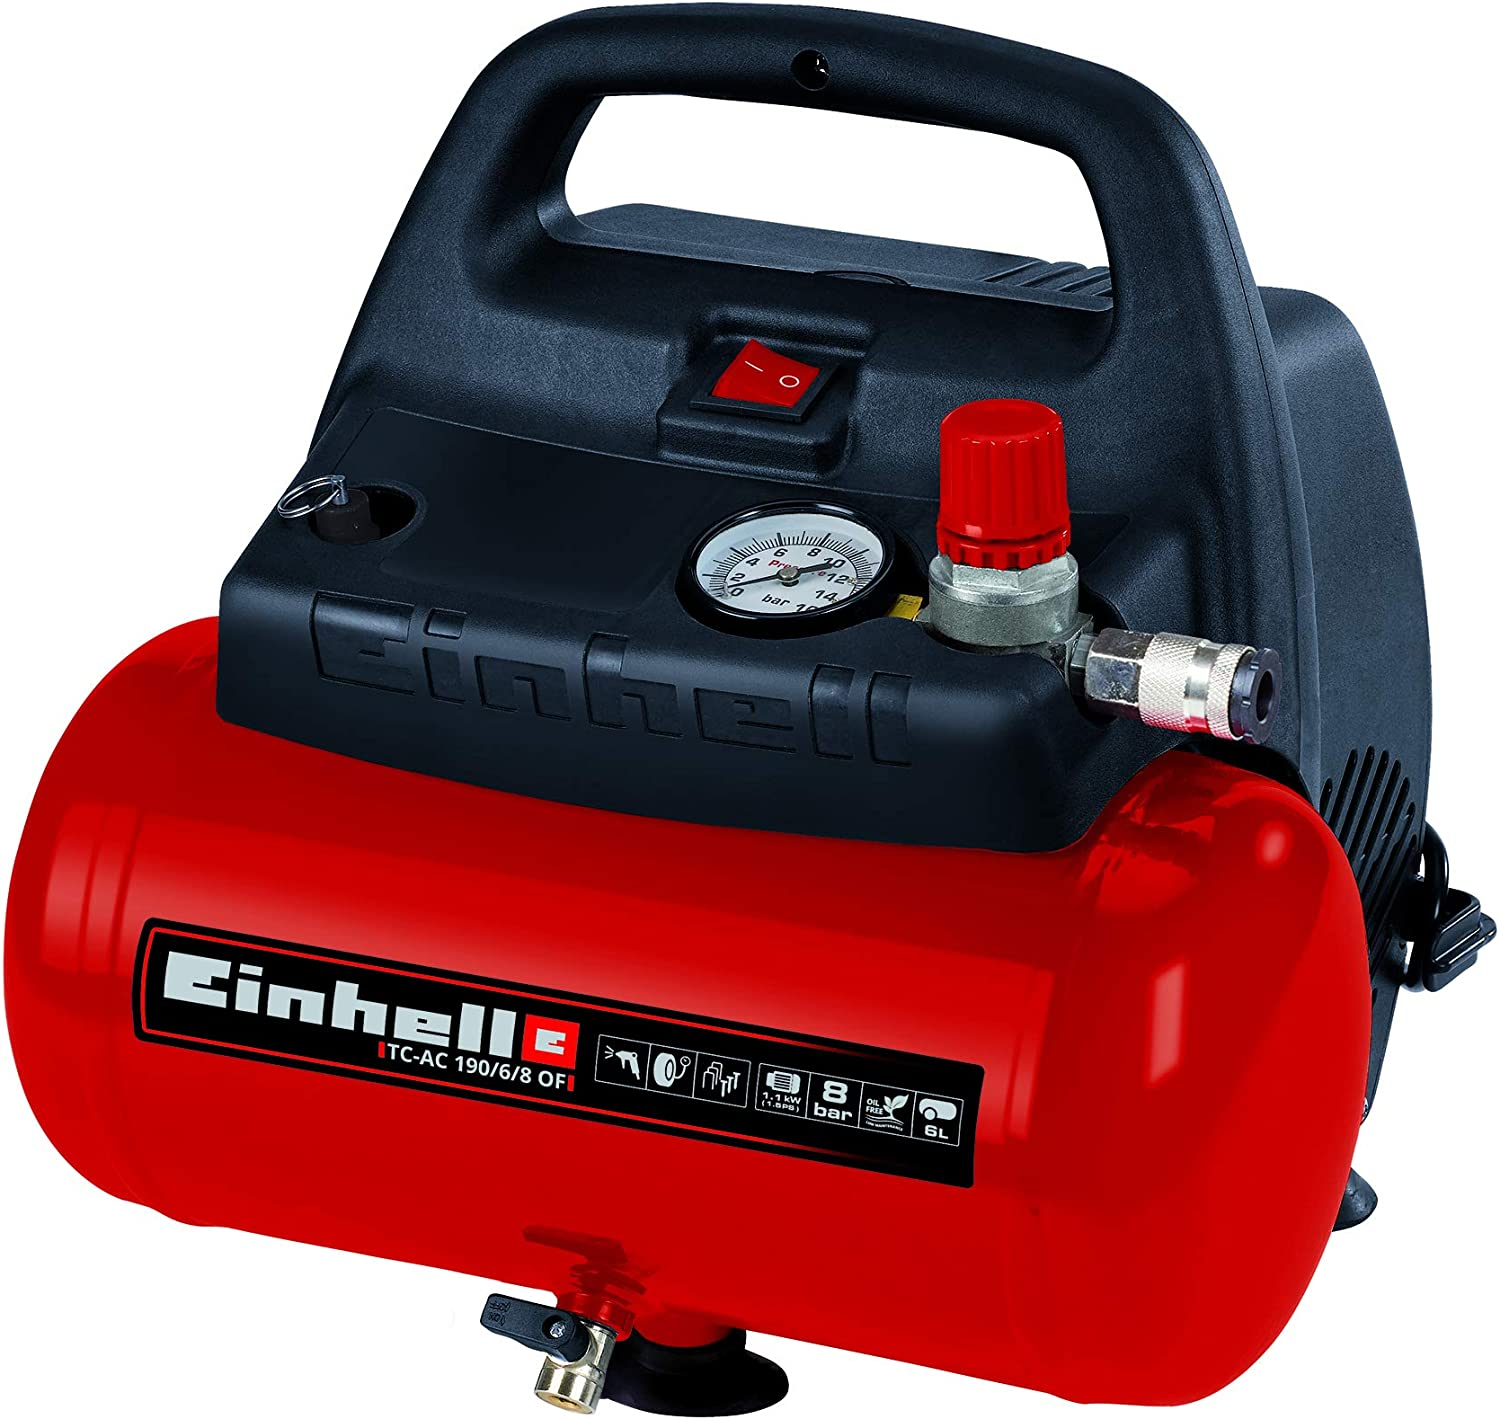 Einhell TH-AC 190/6 OF - Compresor de aire, 8 bar, depósito 6 l ...